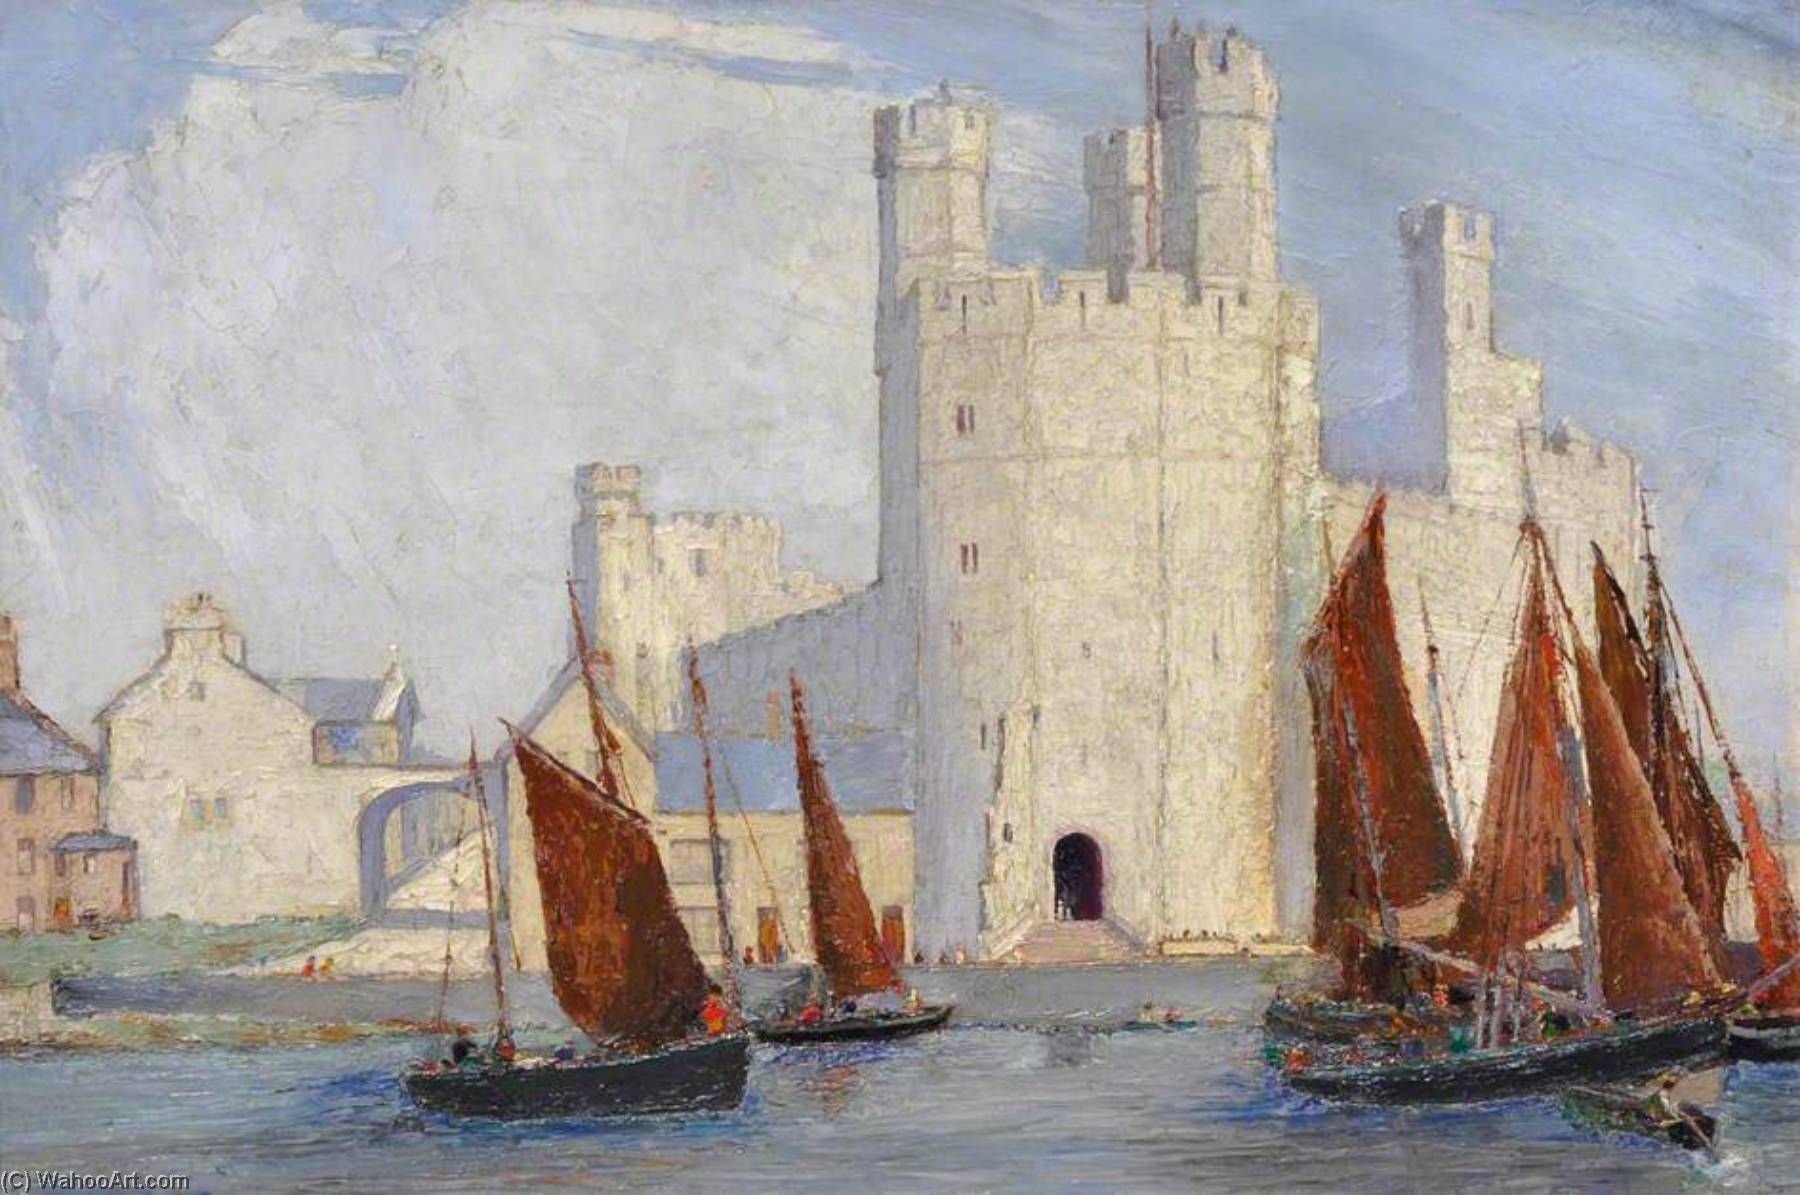 Caernarfon Castello, olio su tela di Harry Hughes Williams